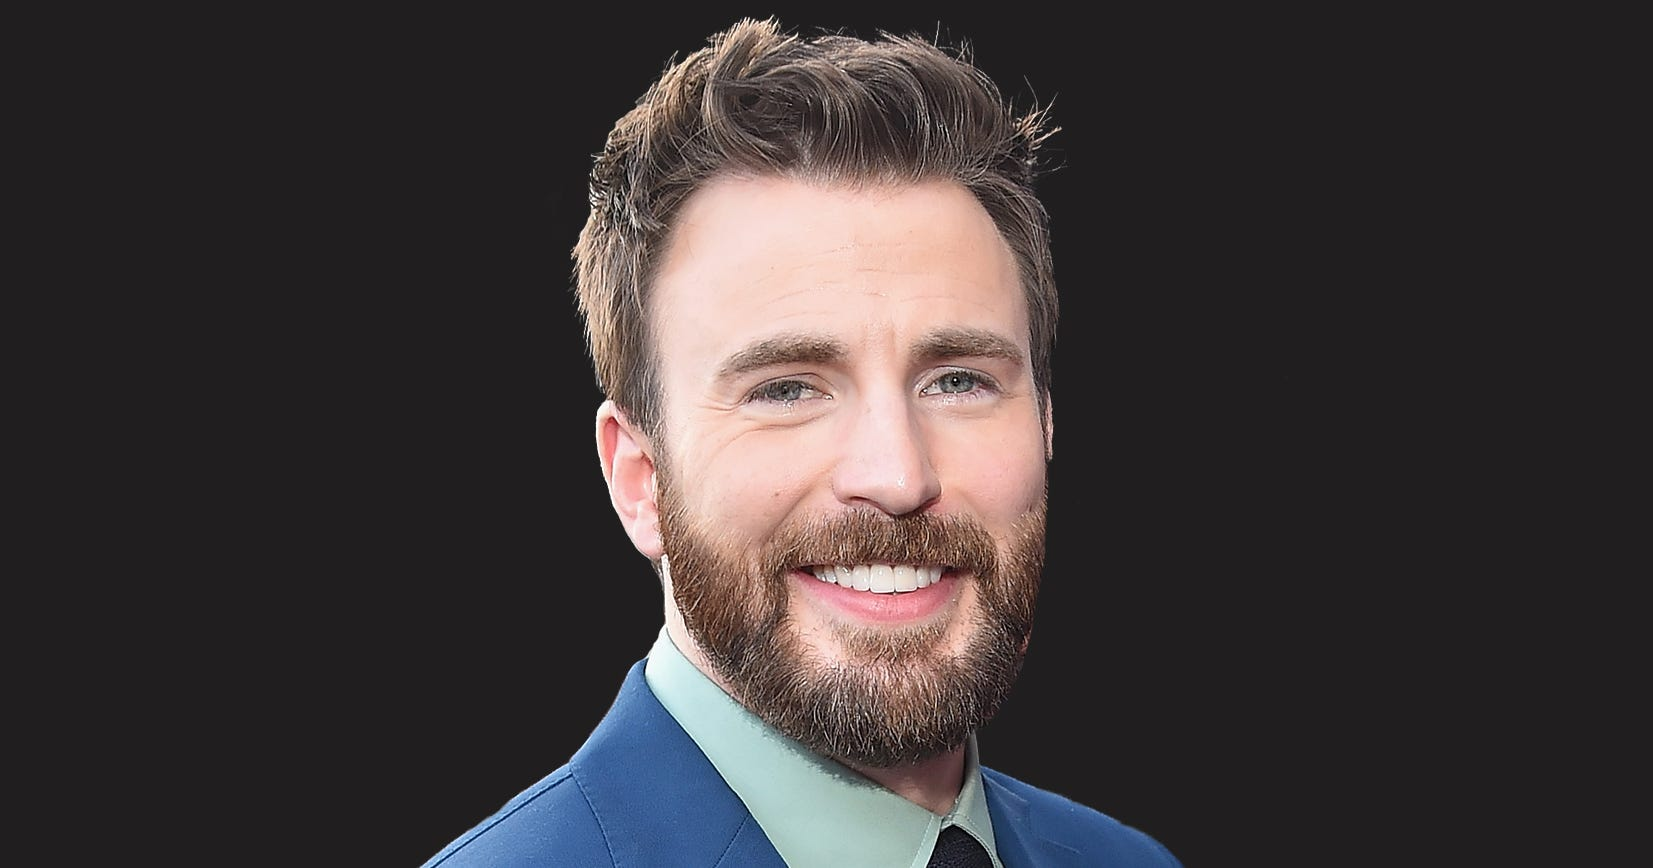 Chris Evans Shoots Down Fake Texts About Him & Breaks Twitters Heart